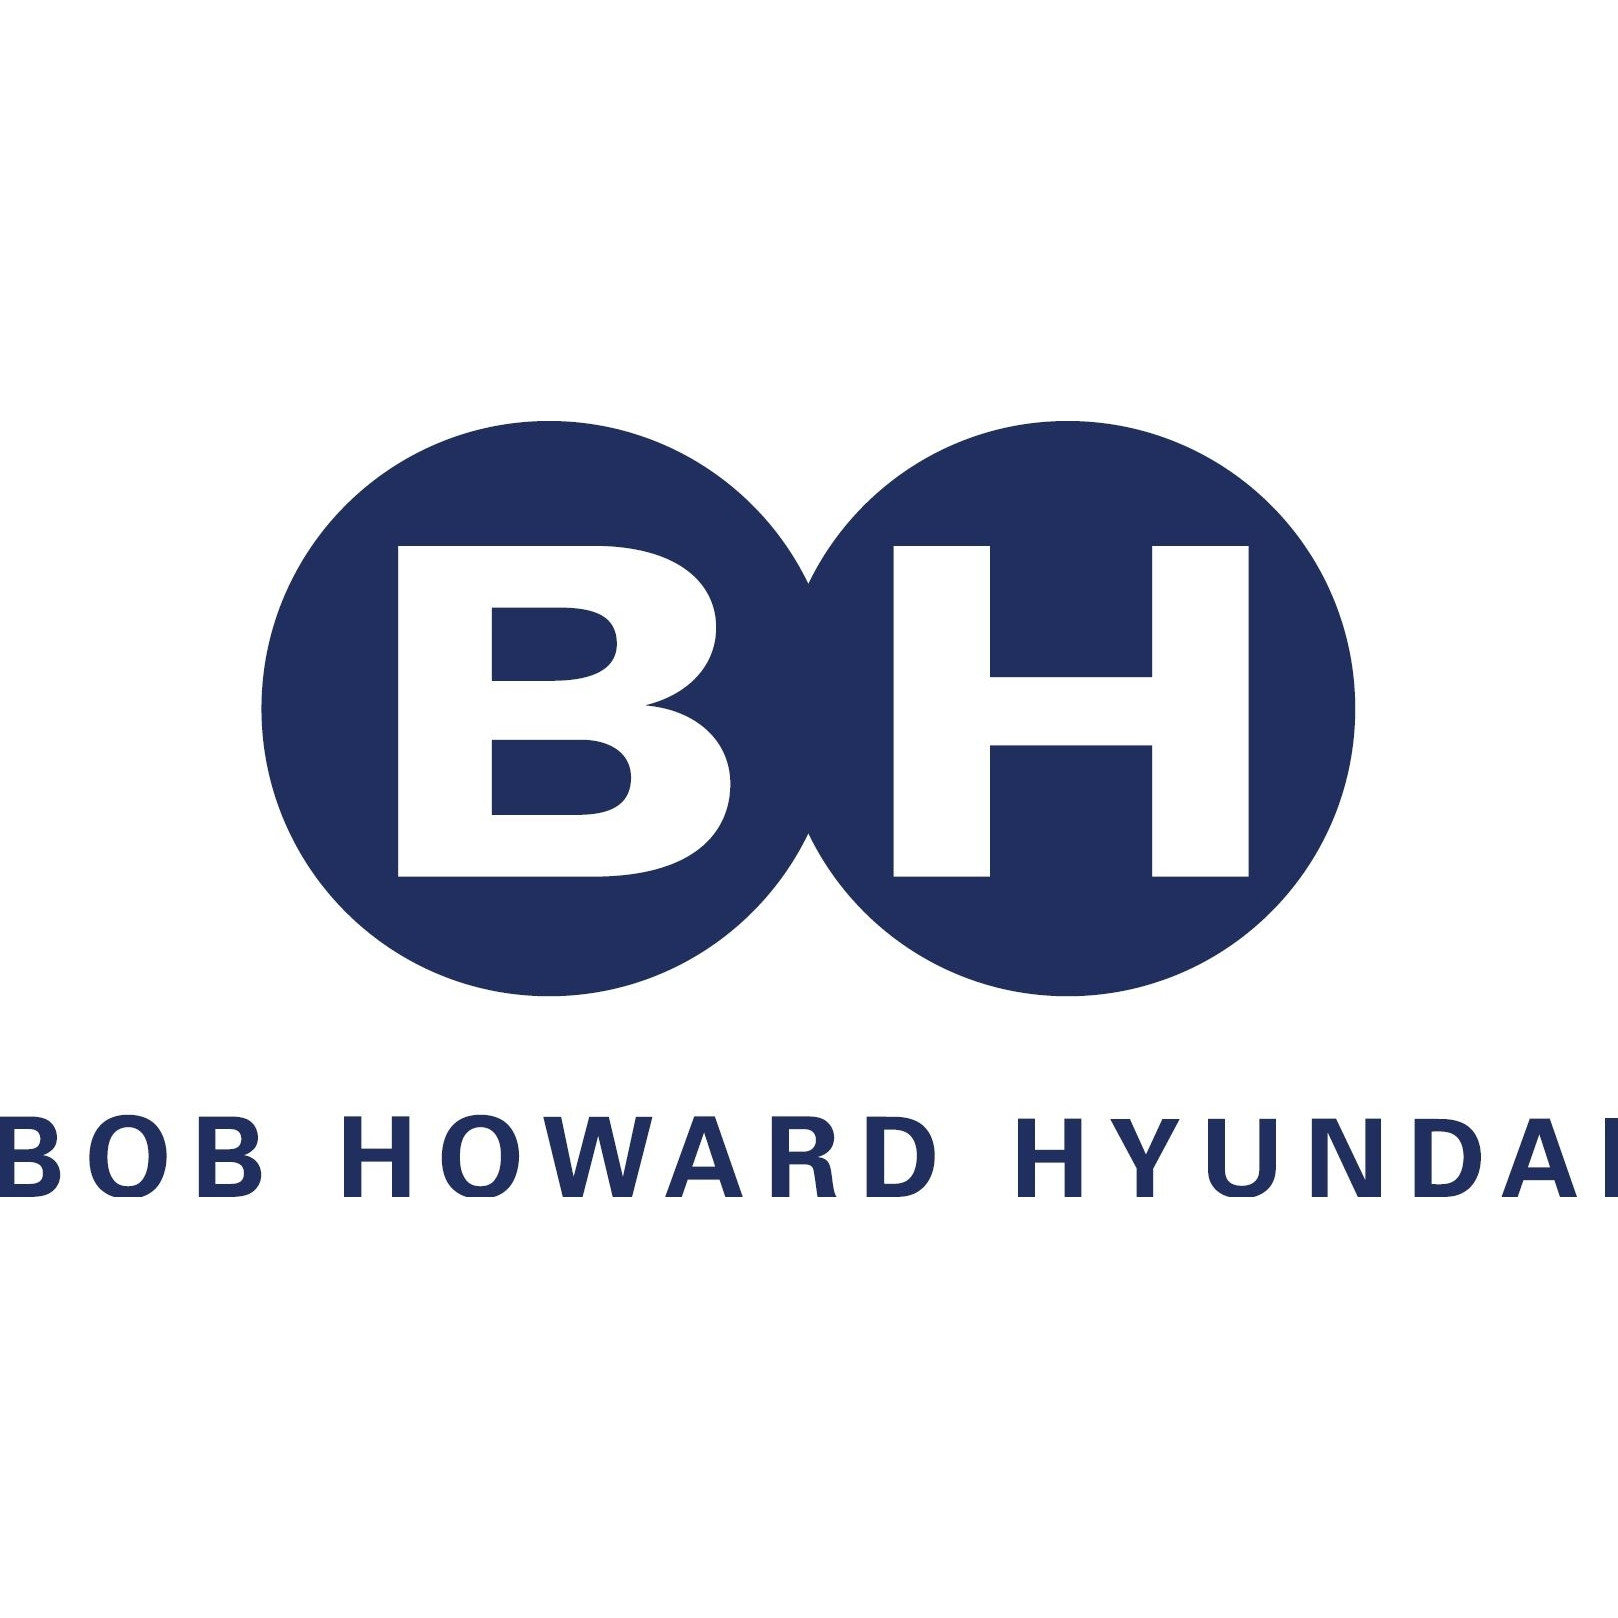 Bob Howard Hyundai Okc